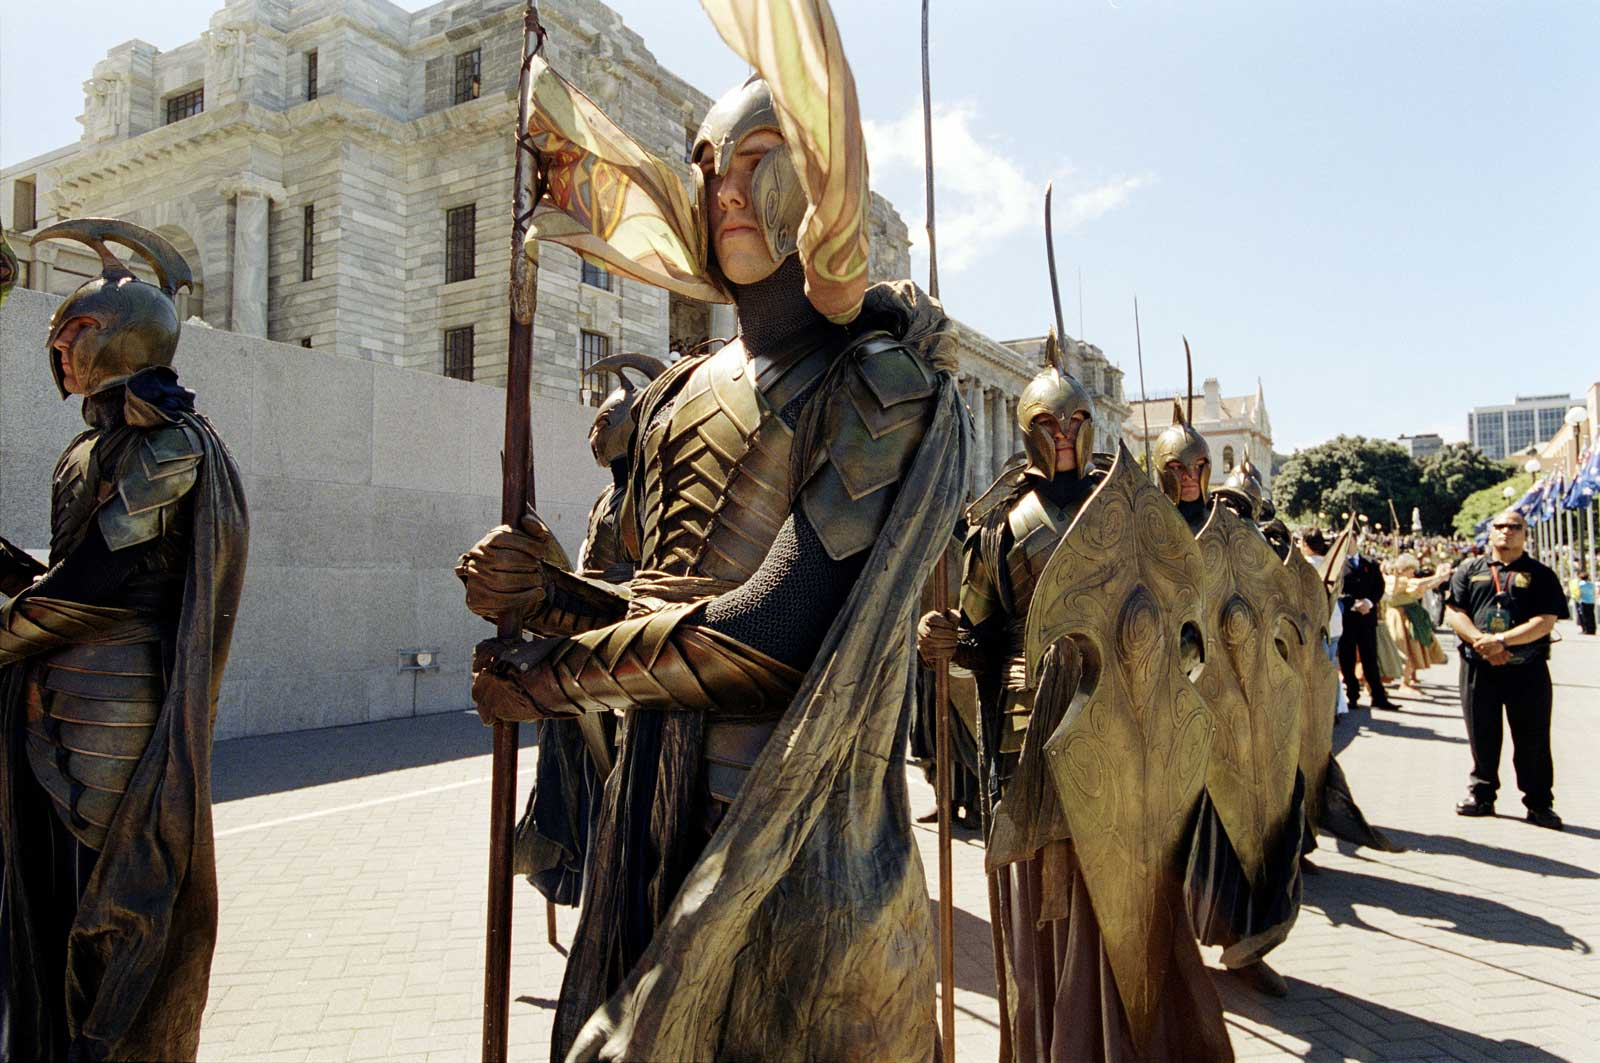 Weta Workshop The Lord Of The Rings Film Trilogy